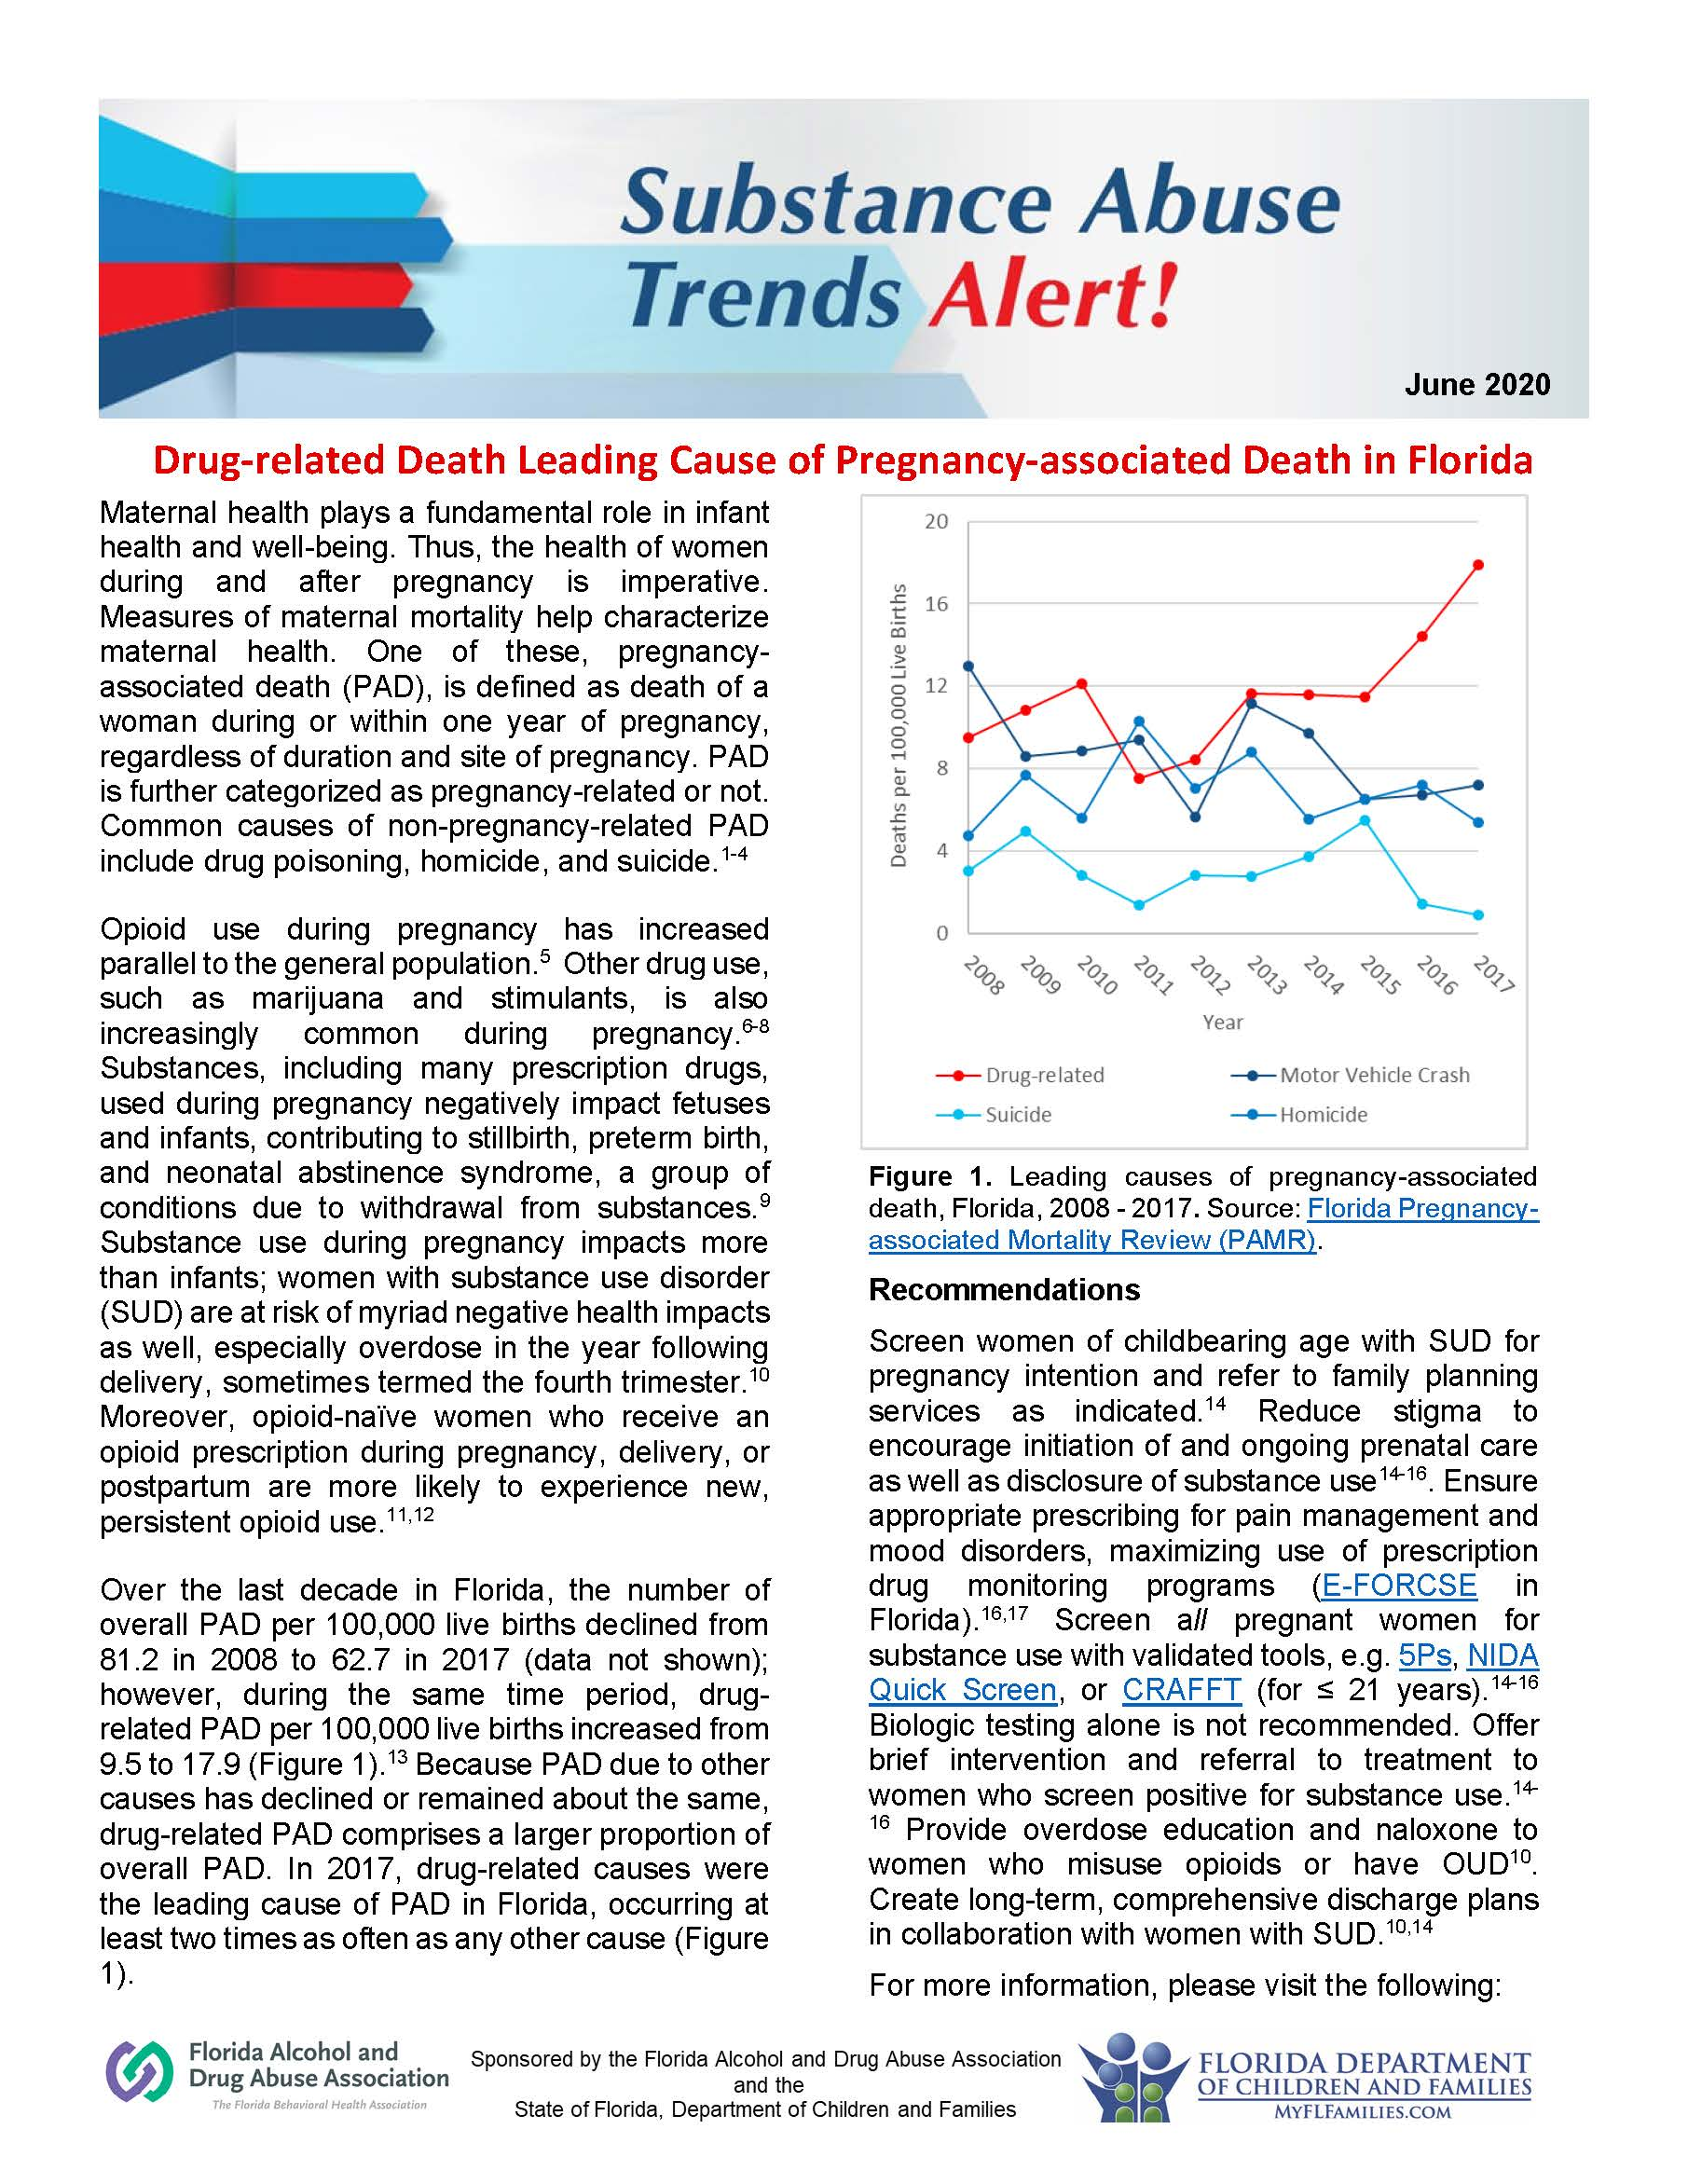 FADAA Drug Trends Alert June 2020 - Cover